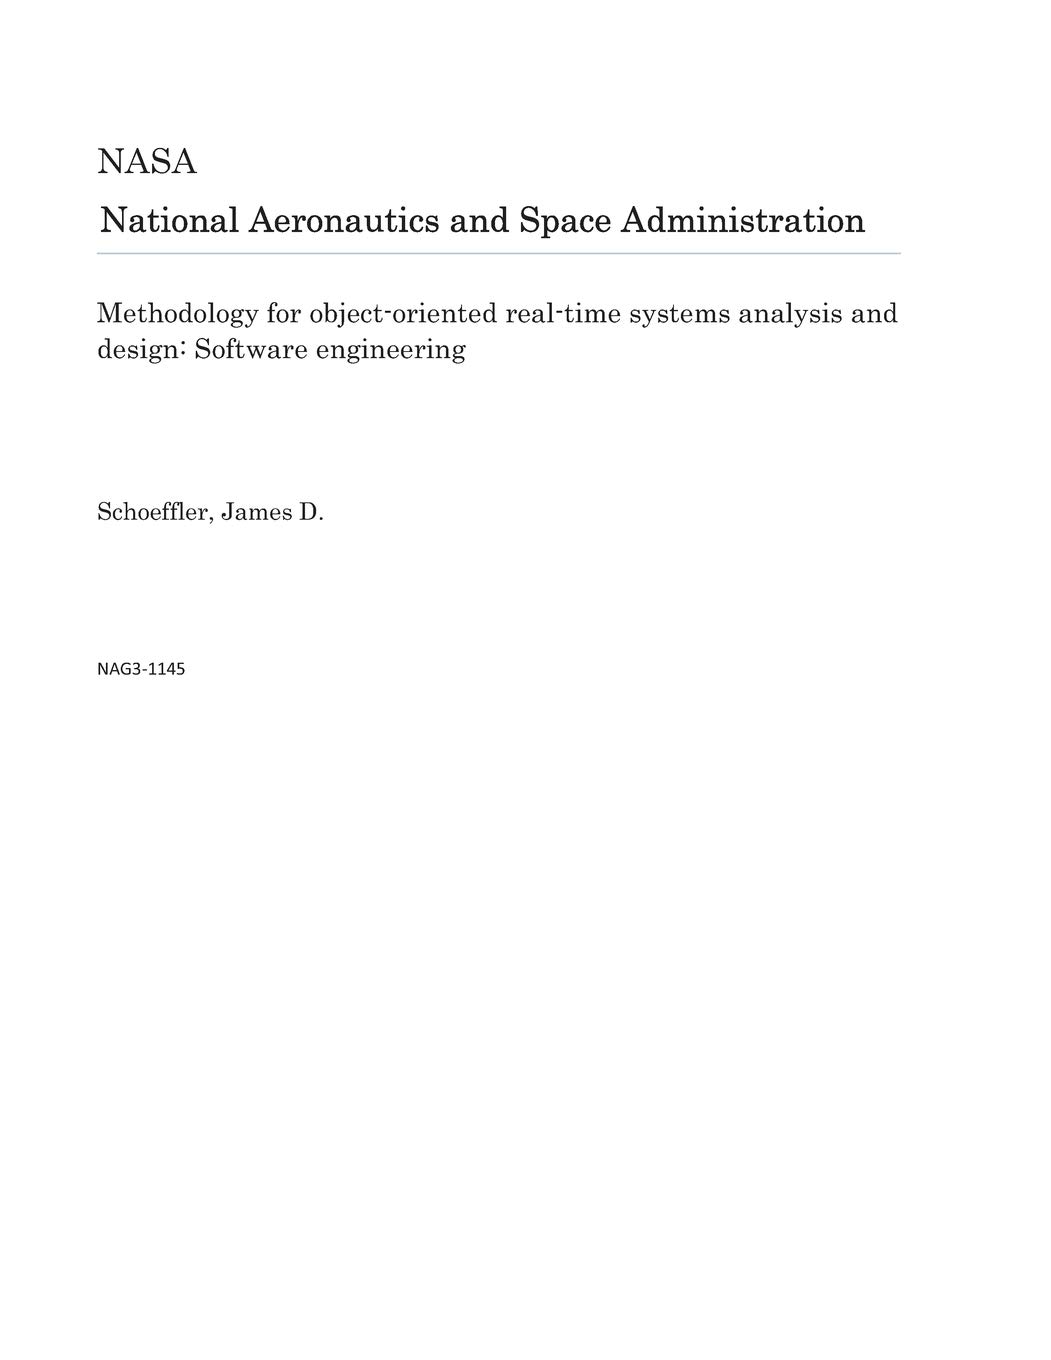 Methodology For Object Oriented Real Time Systems Analysis And Design Software Engineering Nasa National Aeronautics And Space Administration 9781729014820 Amazon Com Books